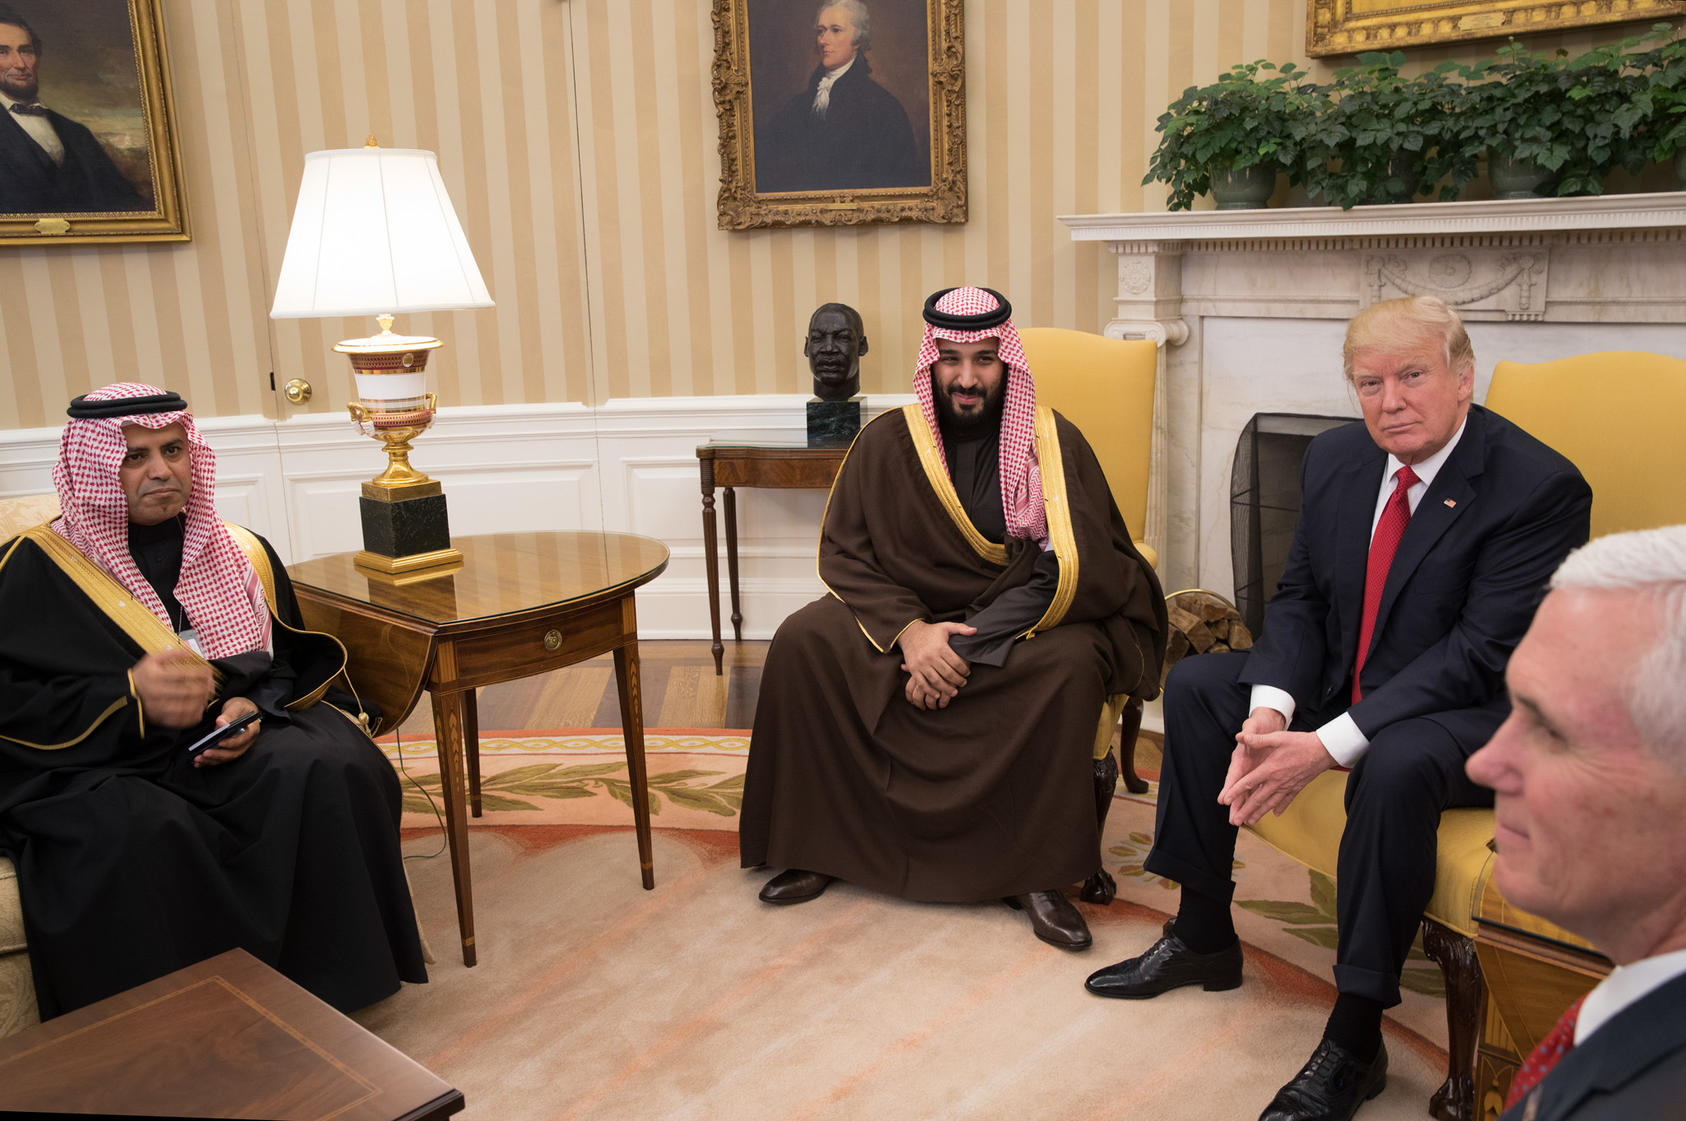 President Donald Trump meets with Saudi Deputy Crown Prince Mohammed bin Salman, who is King Salman's son and the defense minister, in the Oval Office of the White House in Washington, March 14, 2017. Photo Courtesy of The New York Times/Stephen Crowley